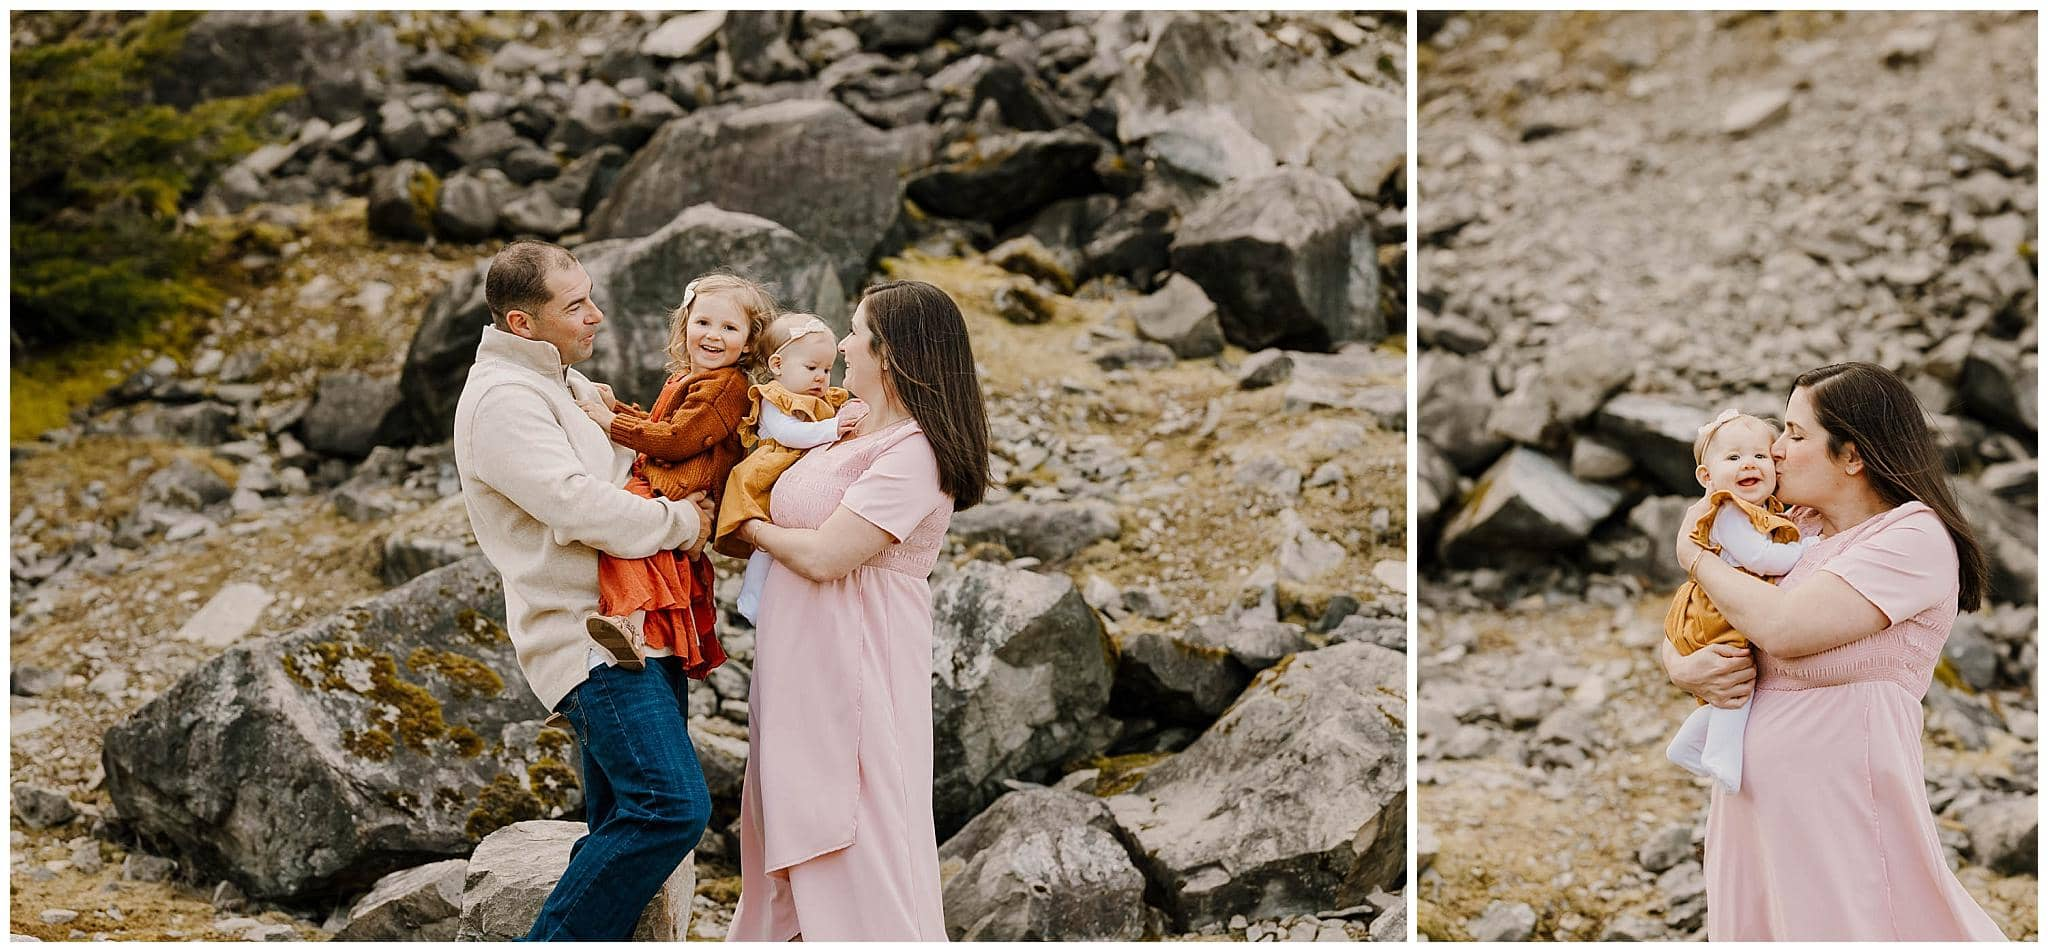 family with two young kids hugging by rocks near portland oregon